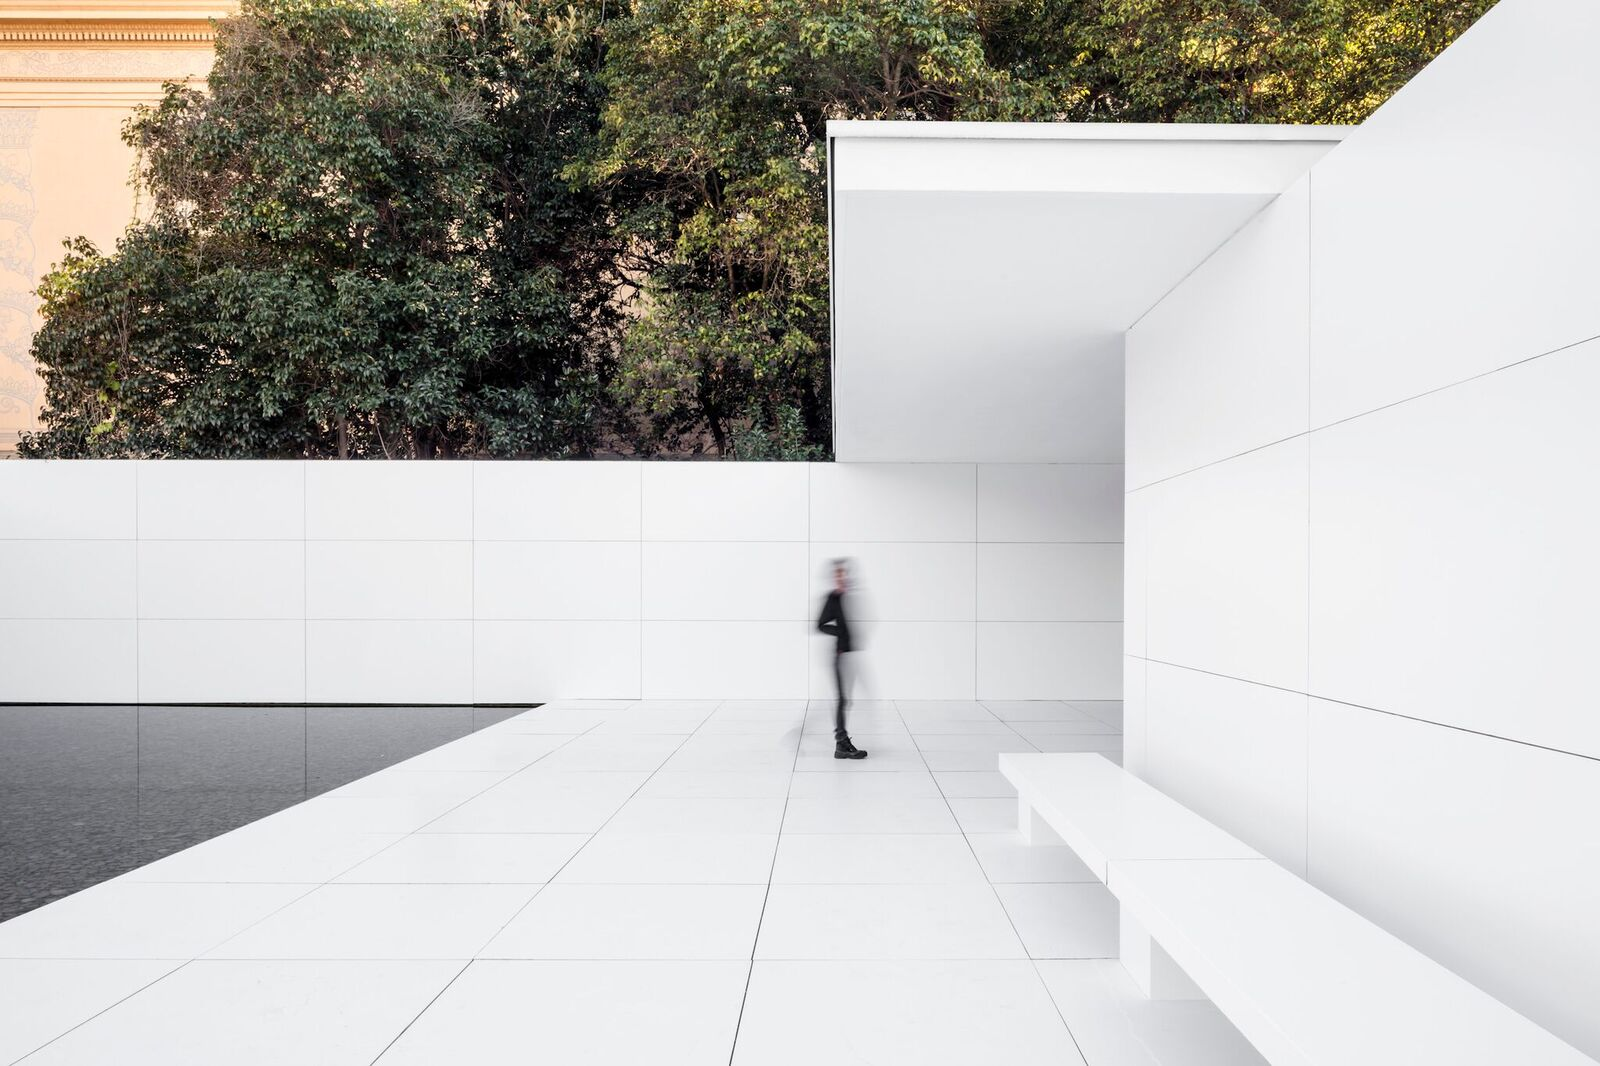 Barcelona Pavillon Mies Missing Materiality A Temporary Intervention At The